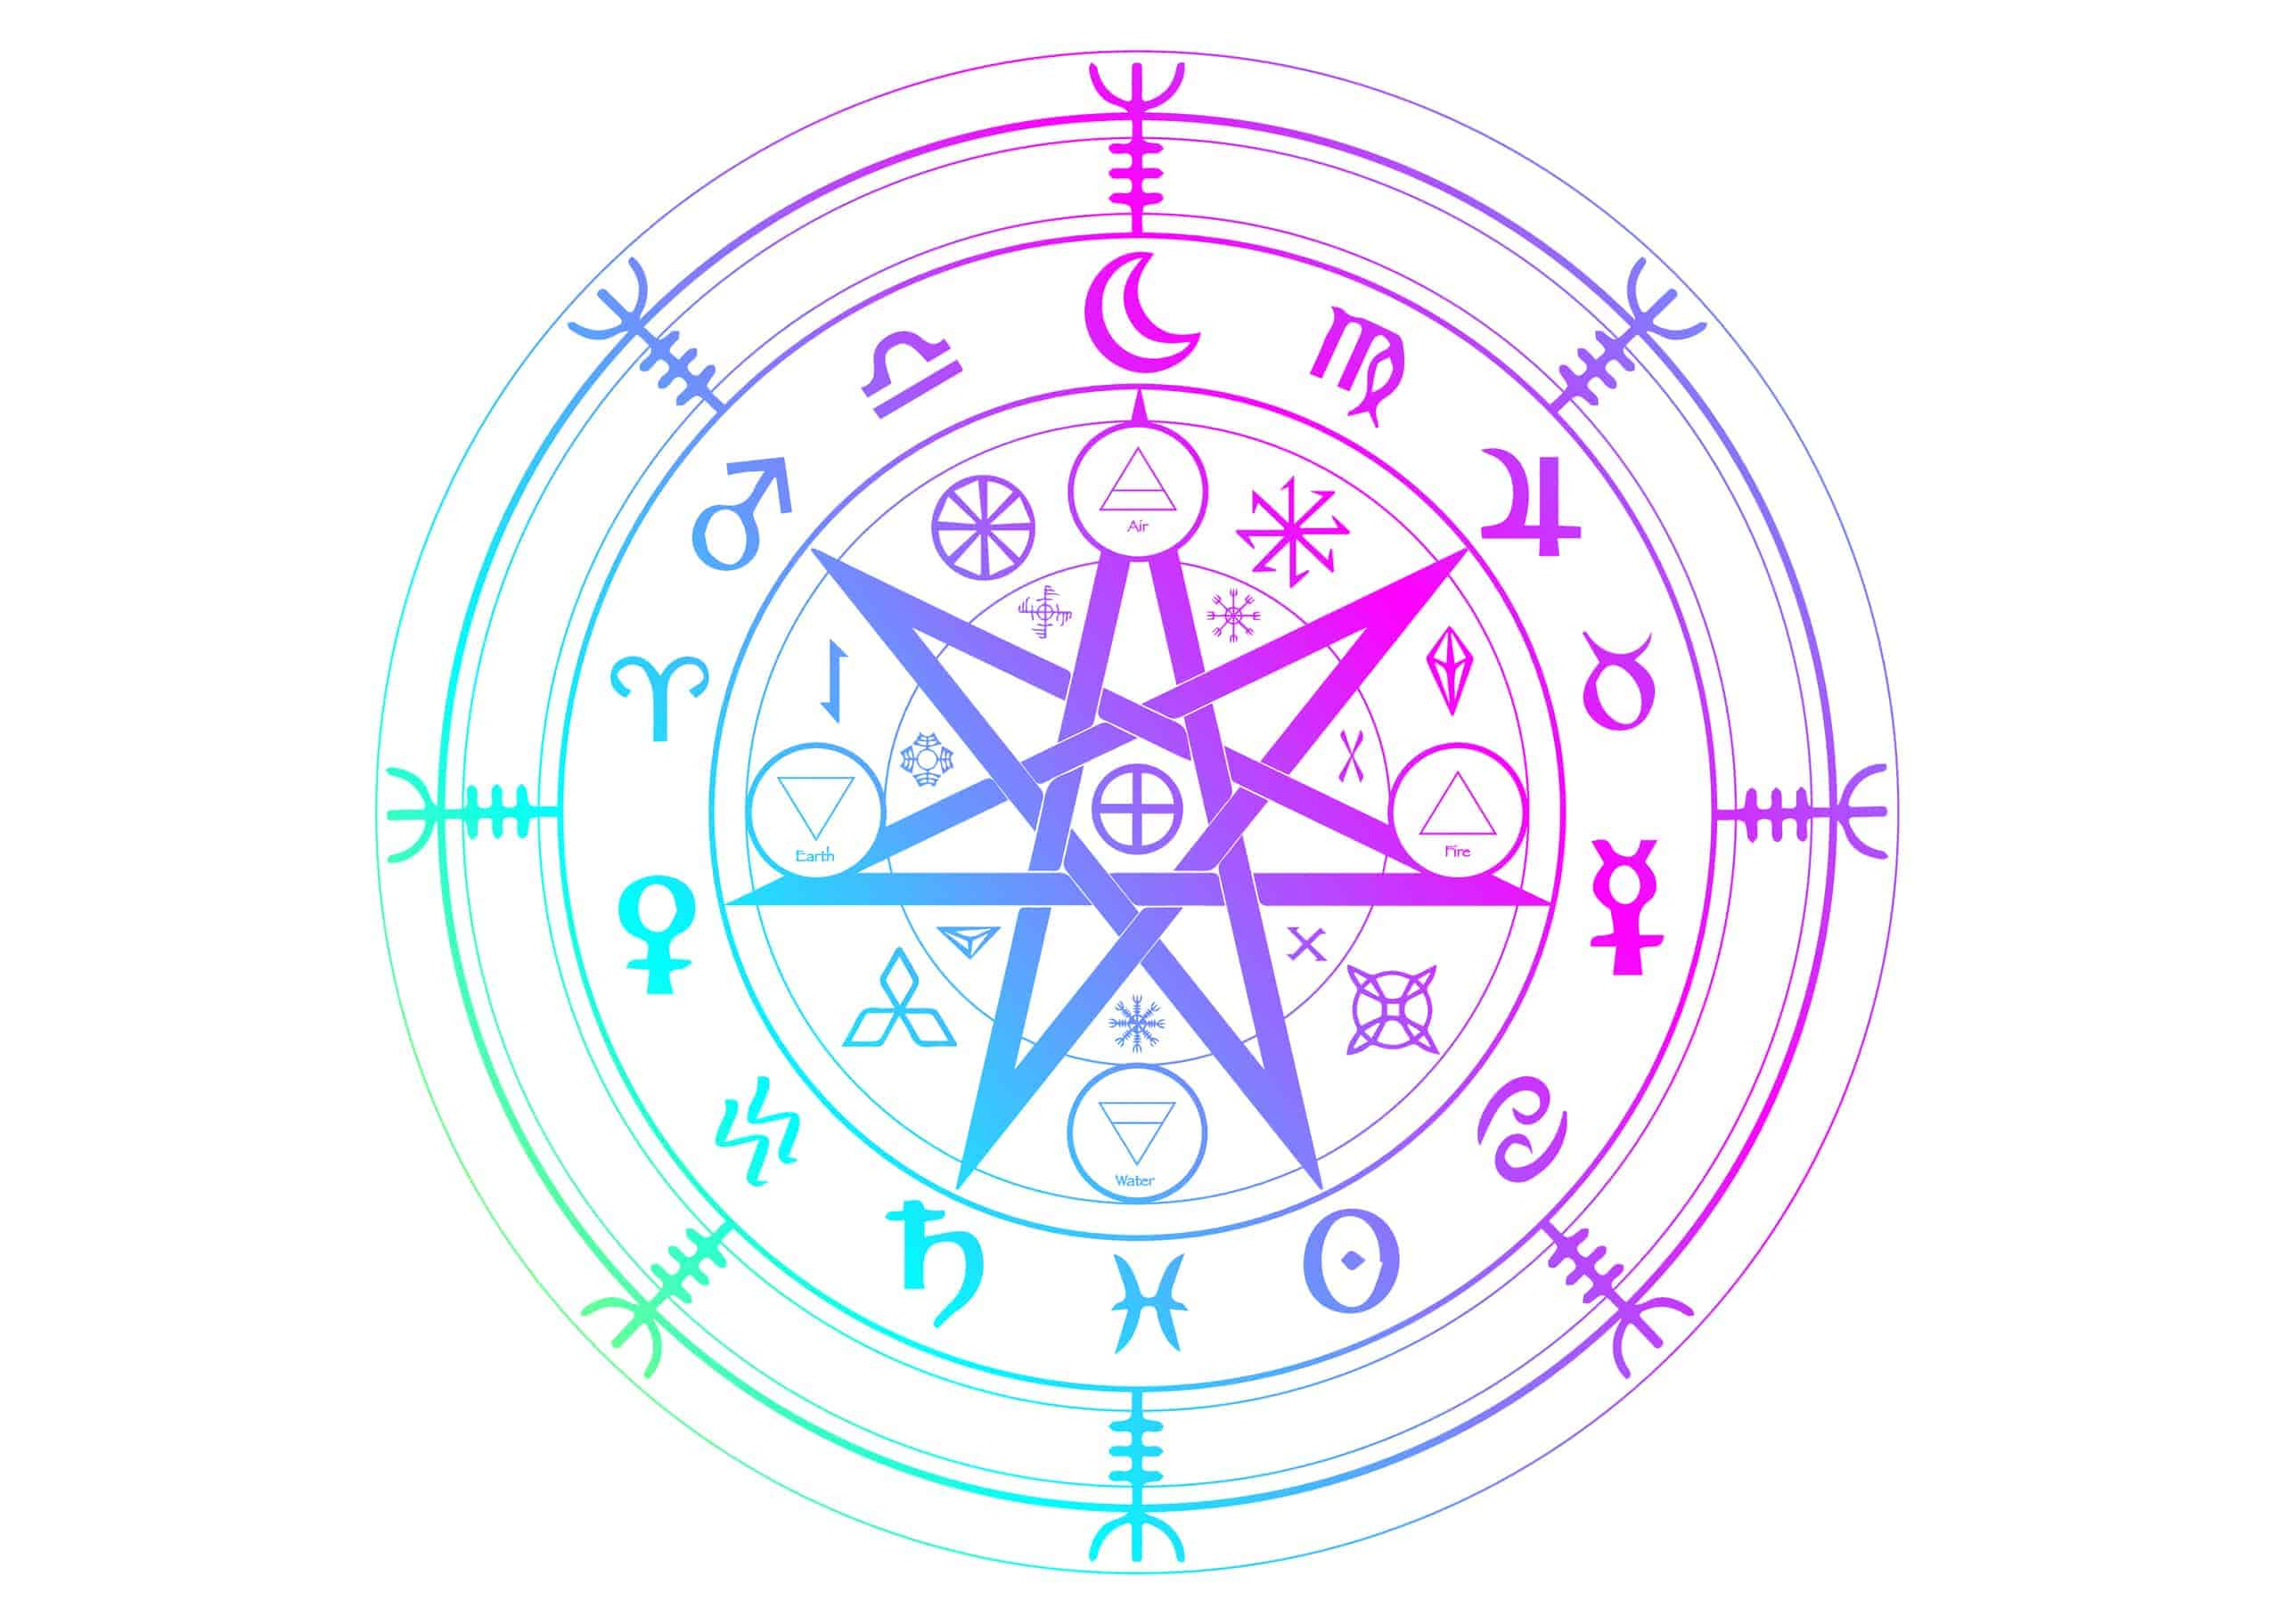 Pagan symbols and their meanings explained. A heptagram with runes on it